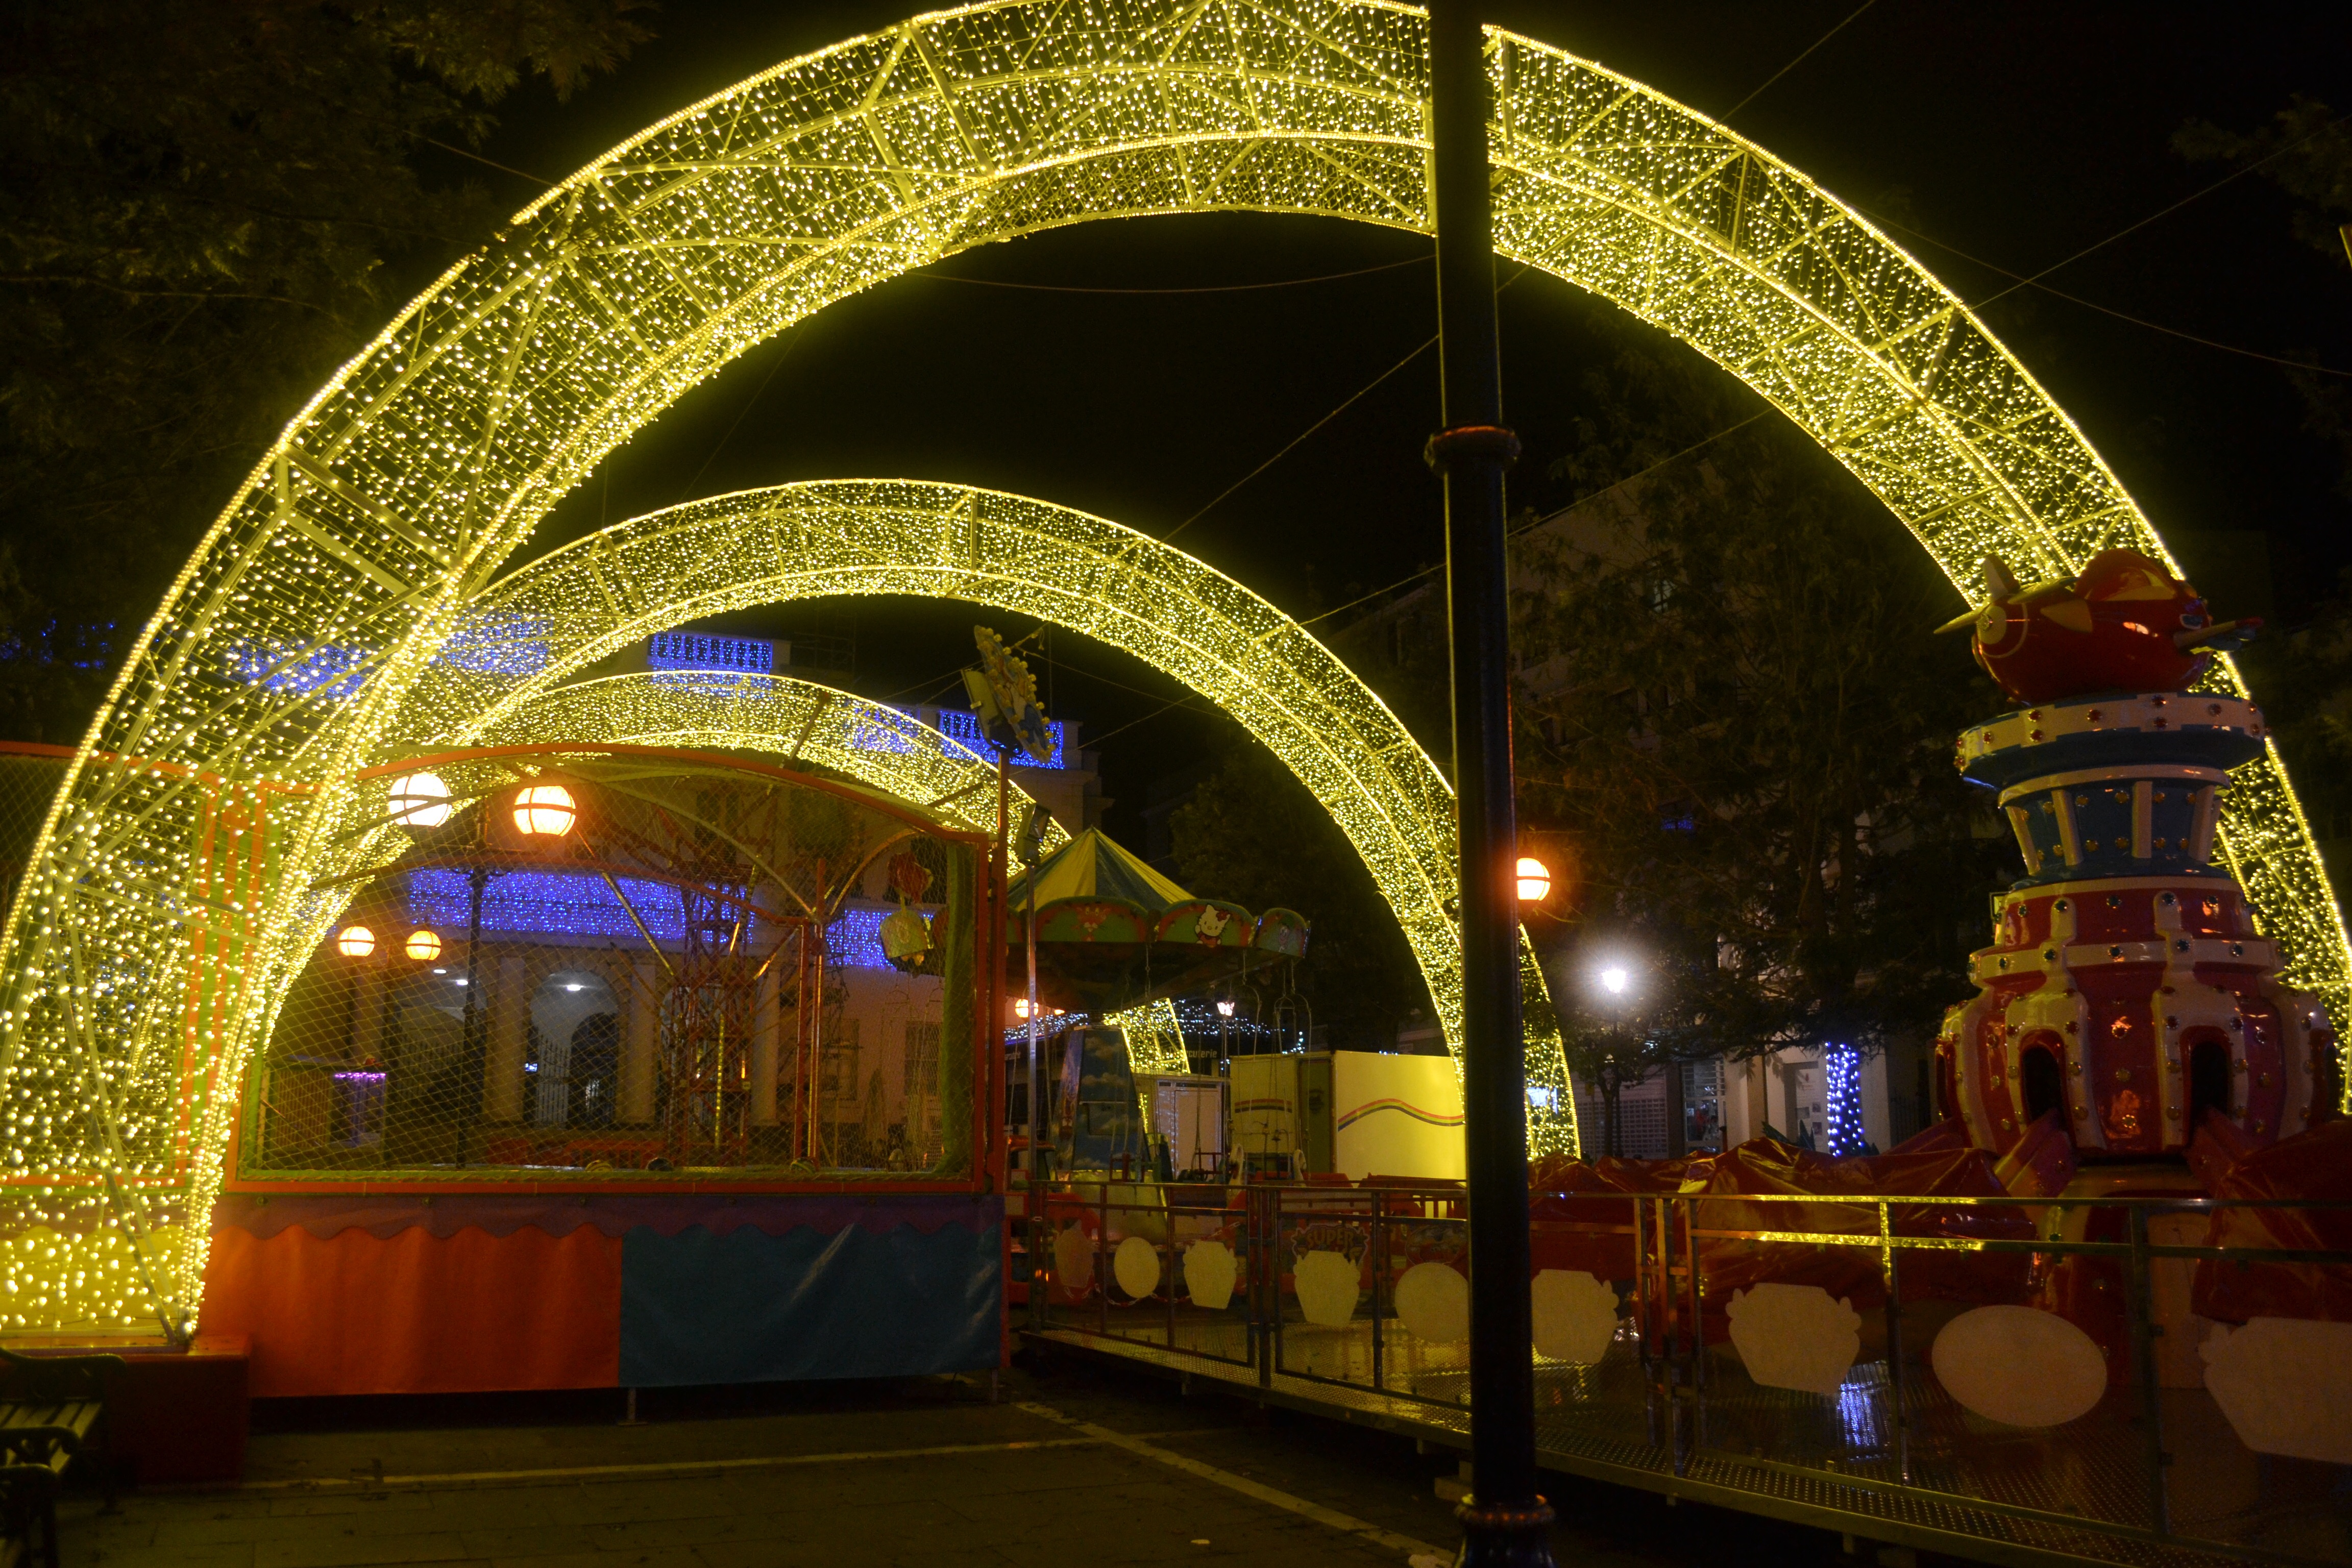 this year the area has been illuminated with these arches of fairy lights which are really quite stunning as you round the corner and see it